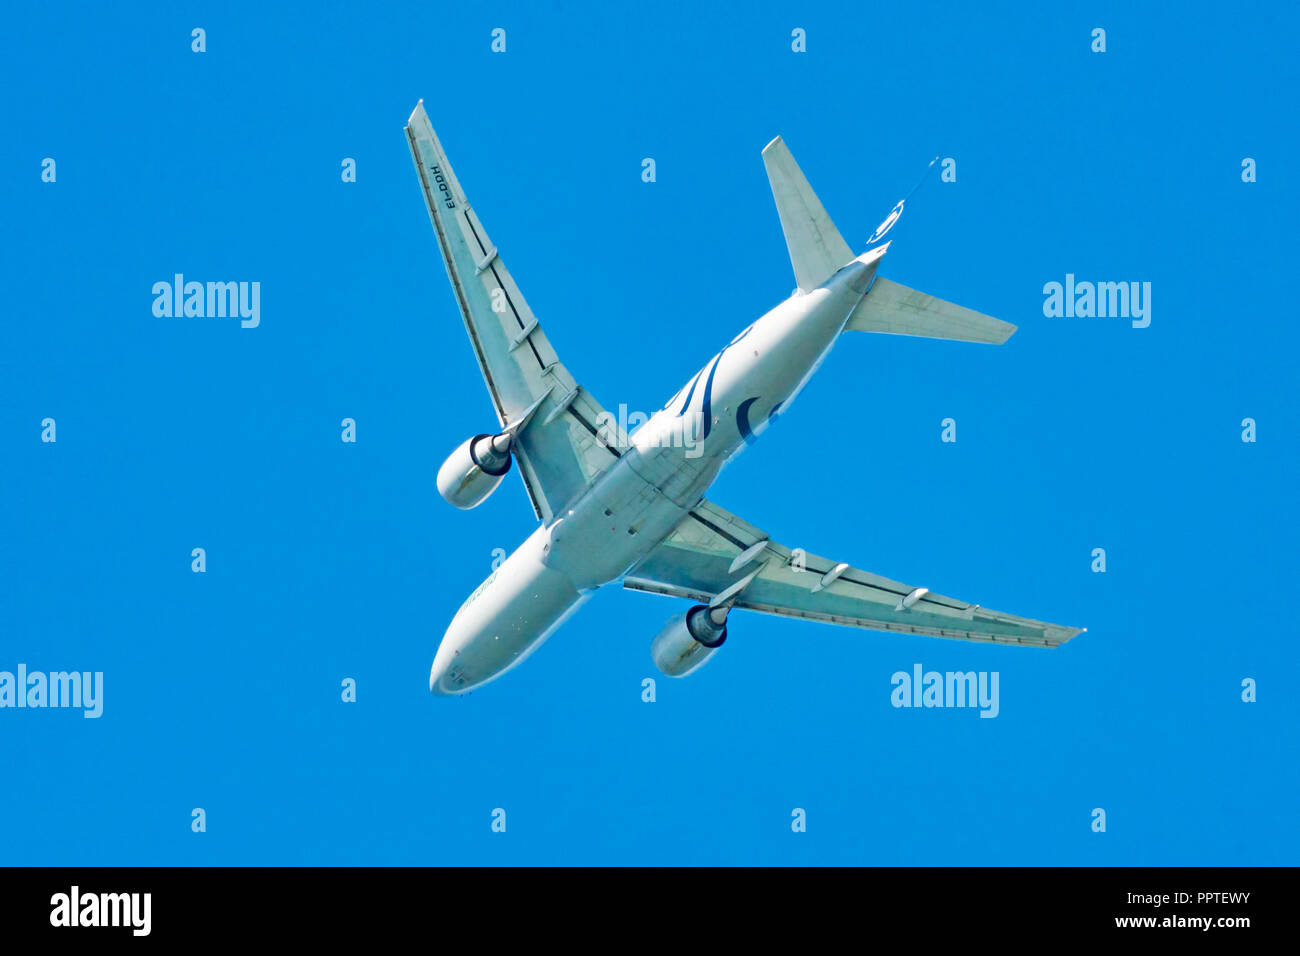 Alitalia Airplane Stock Photos & Alitalia Airplane Stock Images - Alamy